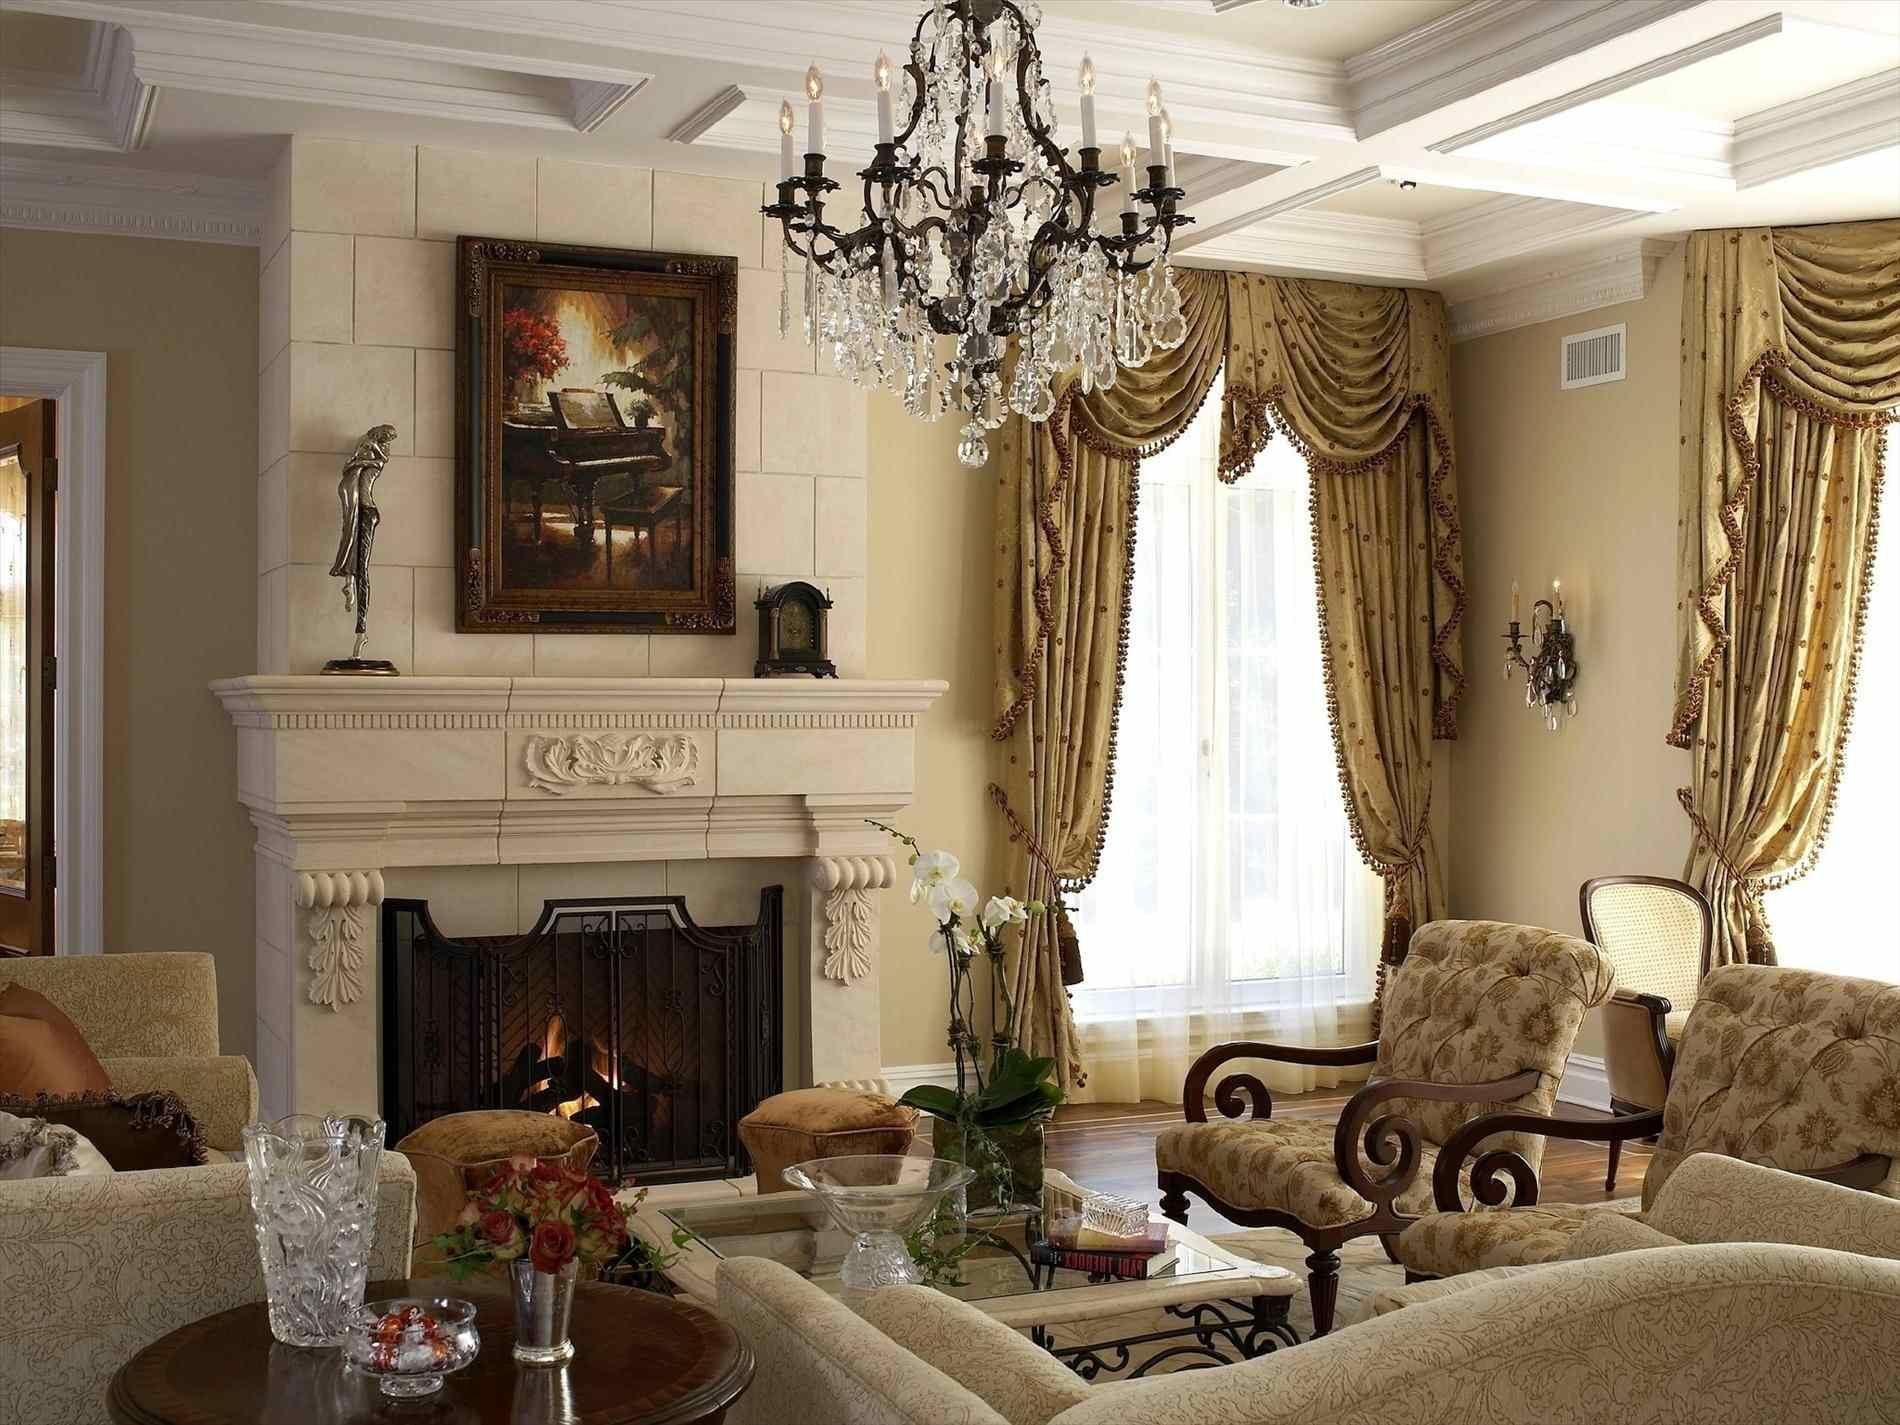 20 Living Room With Fireplace That Will Warm You All Winter Indian Living Rooms Window Treatments Living Room Small Living Rooms